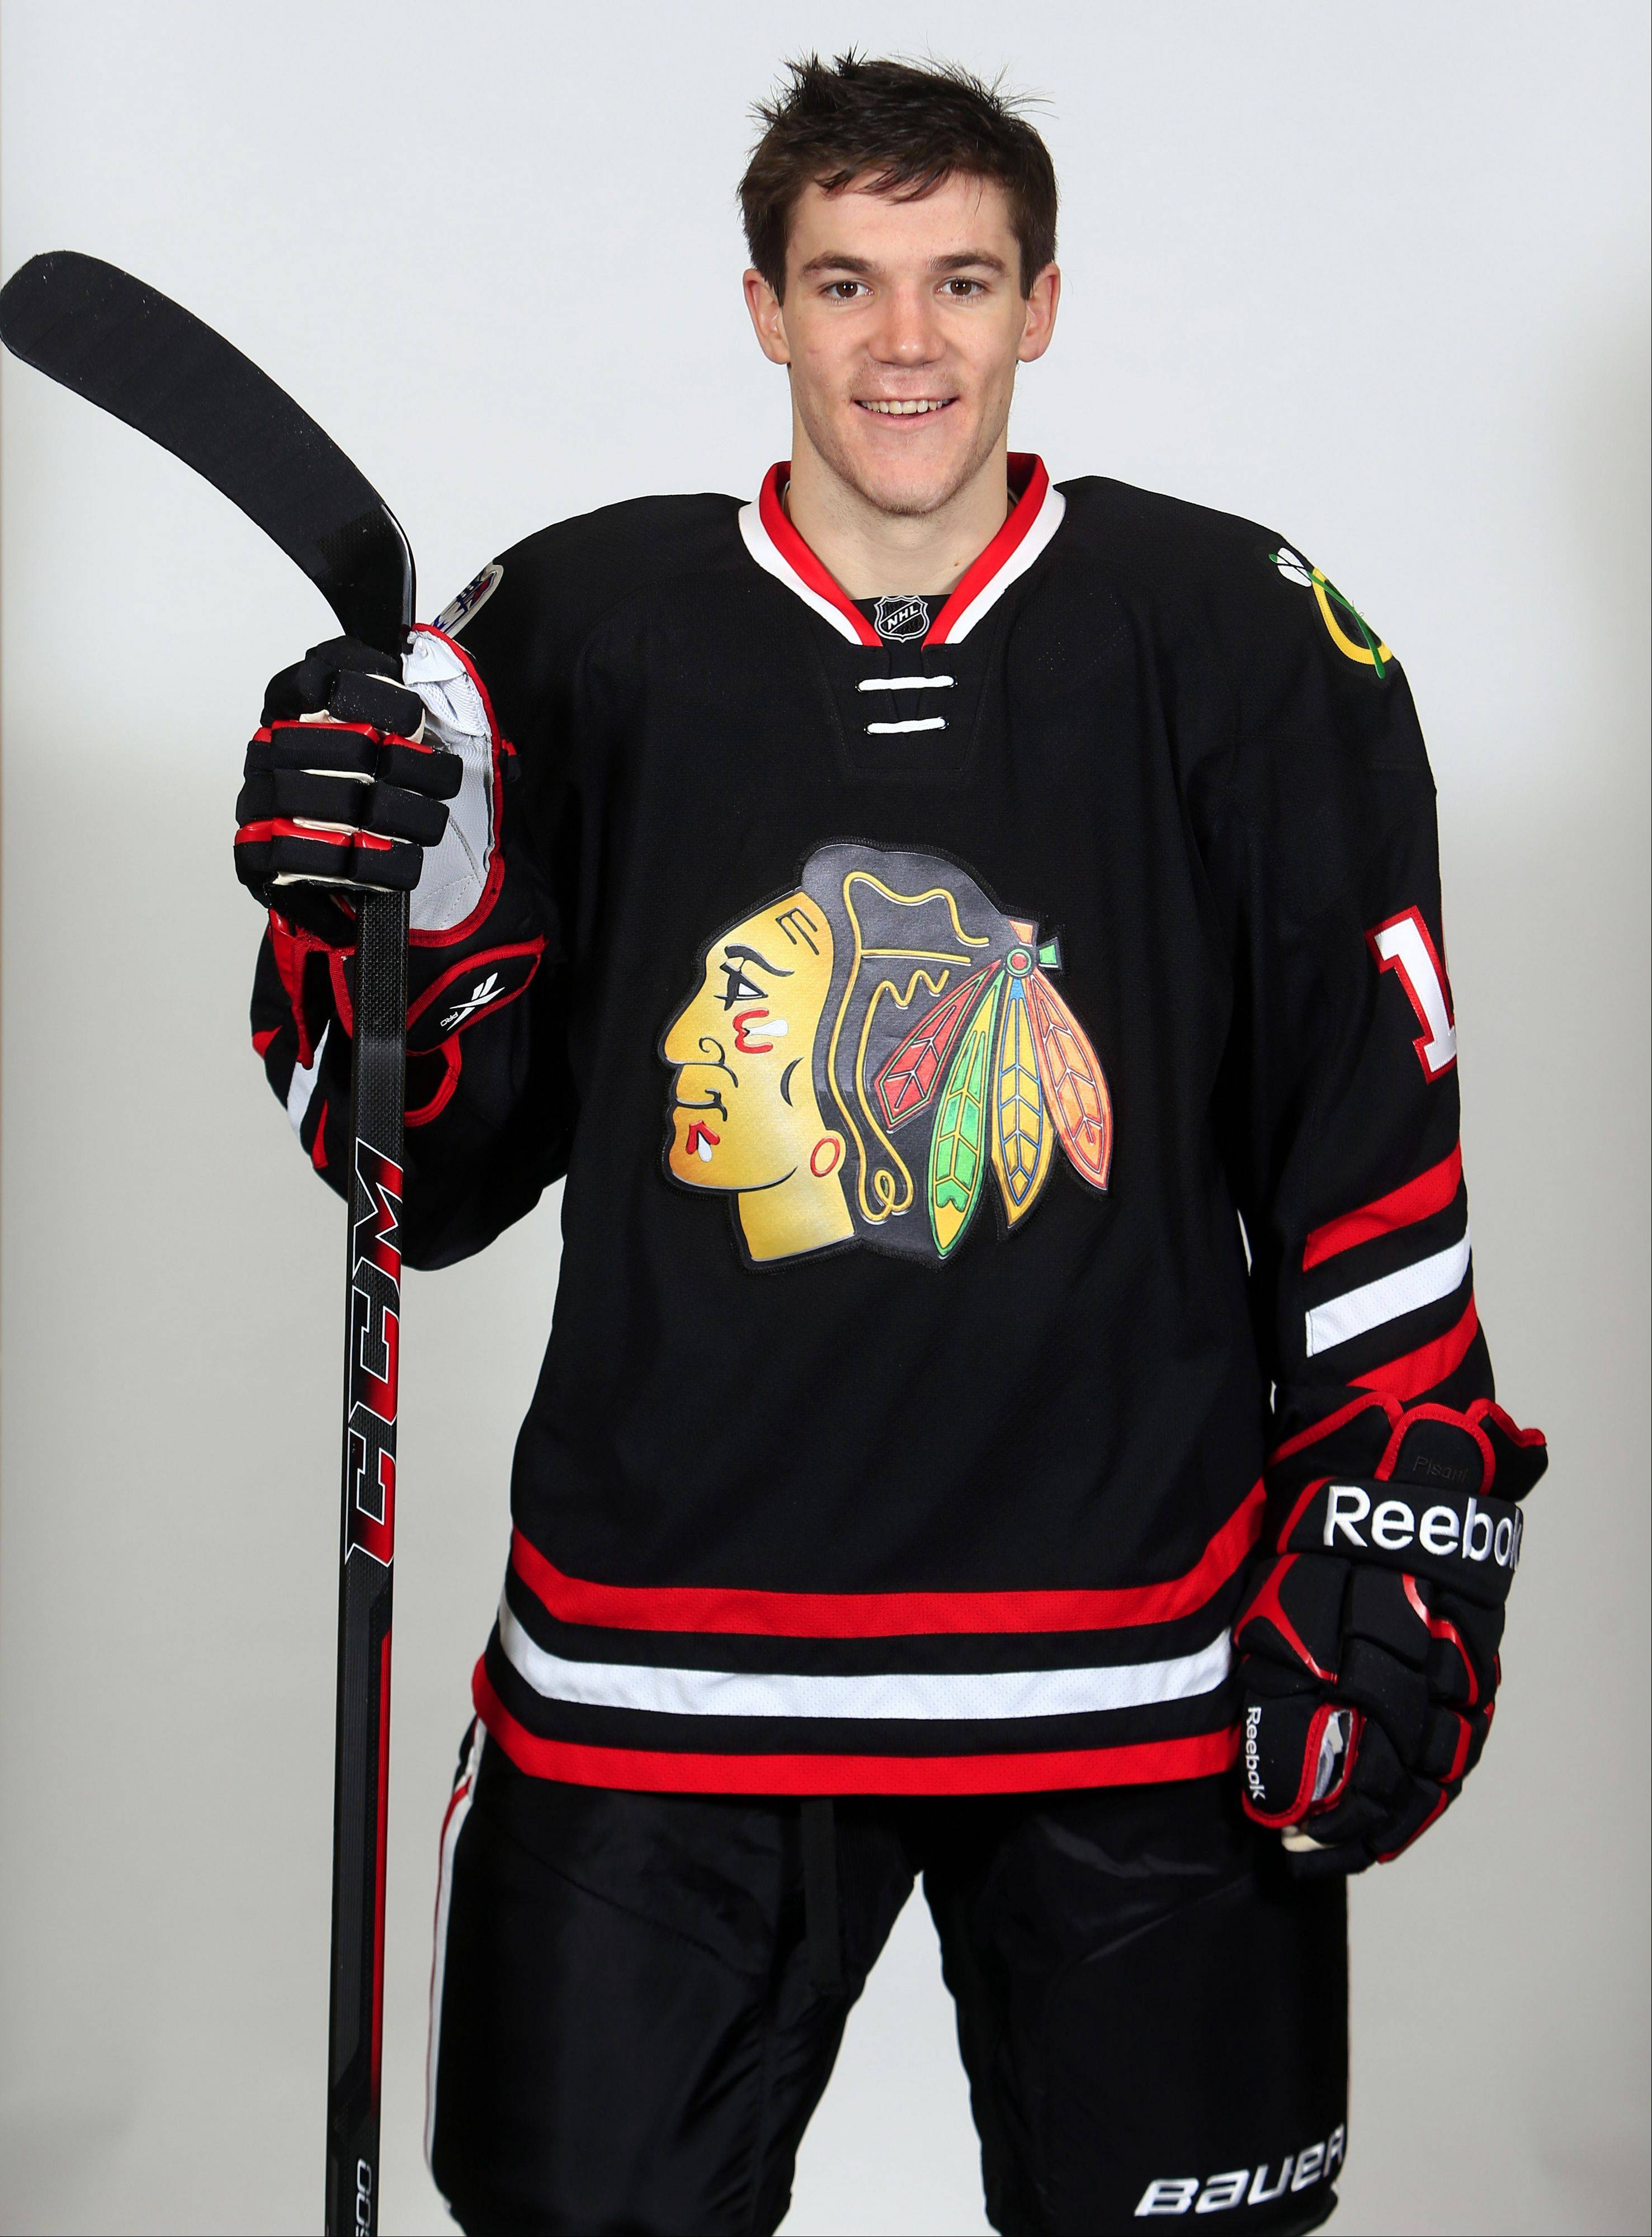 Photo courtesy of Chicago Blackhawks Andrew Shaw models the new Blackhawks jersey the team will wear for its March 1 game vs. the Pittsburgh Penguins at Soldier Field. The jersey features chrome-treated logo designs.